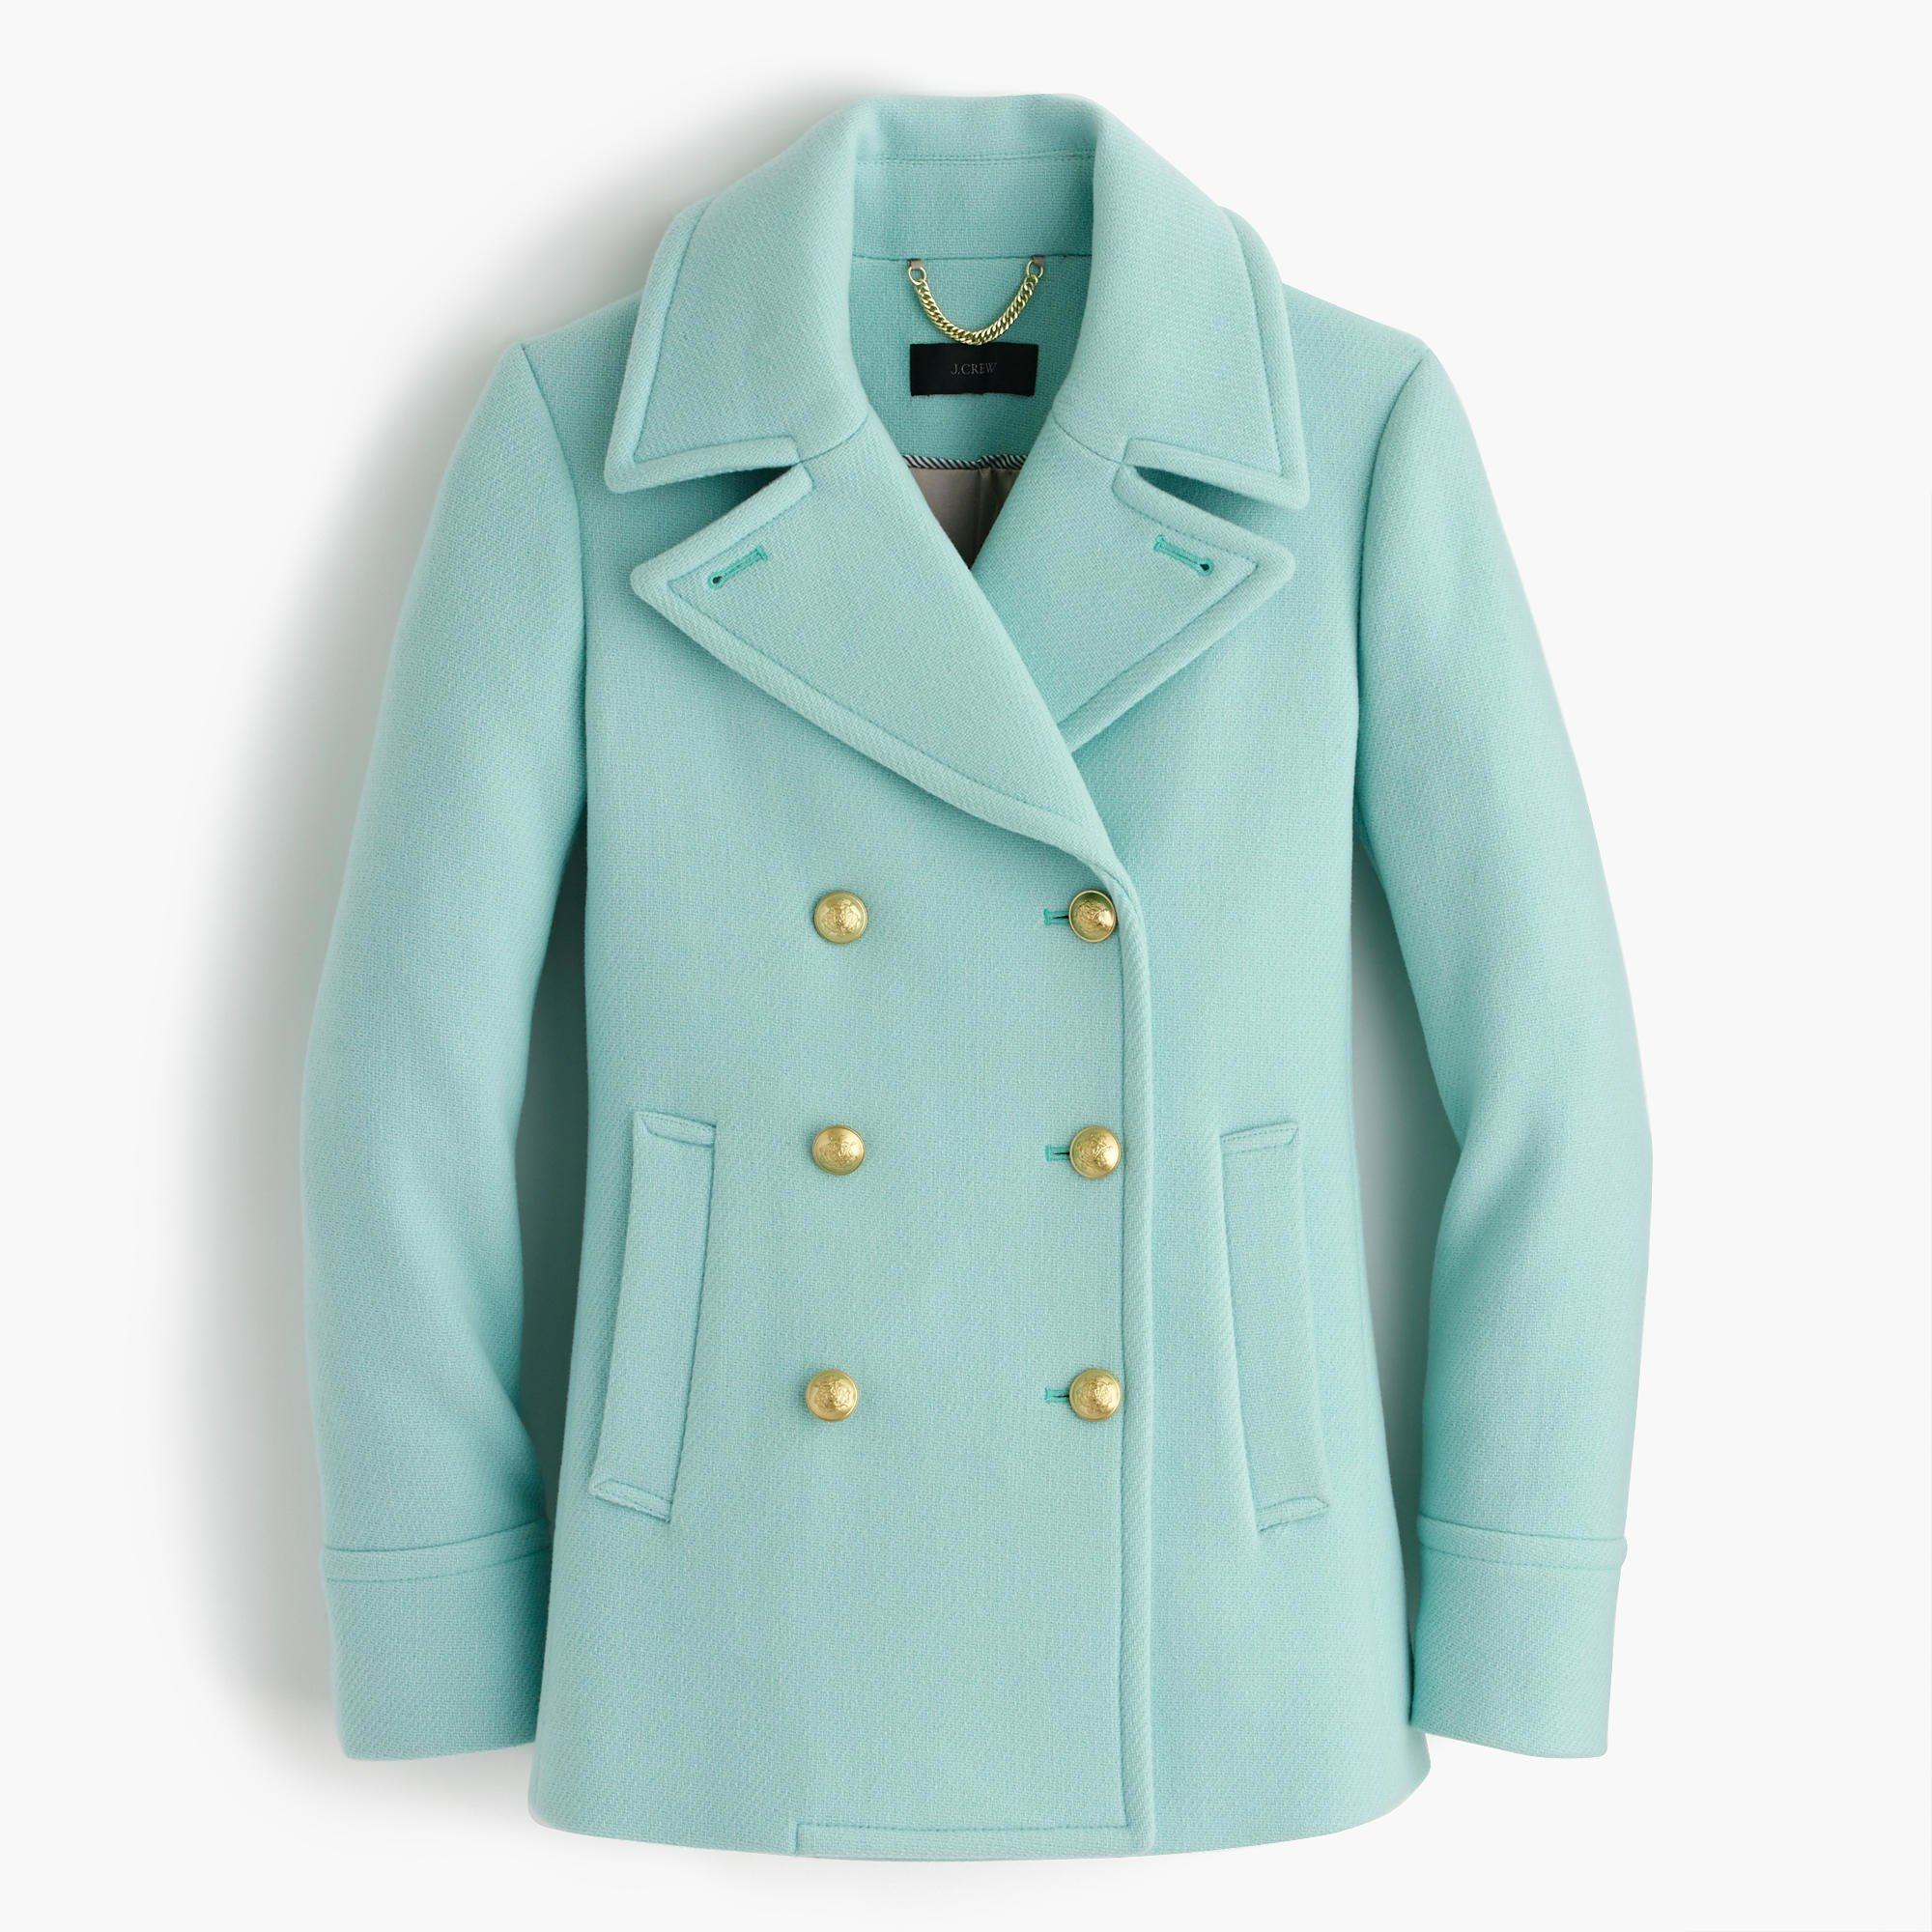 J.crew Tall Majesty Peacoat In Stadium Cloth in Blue | Lyst